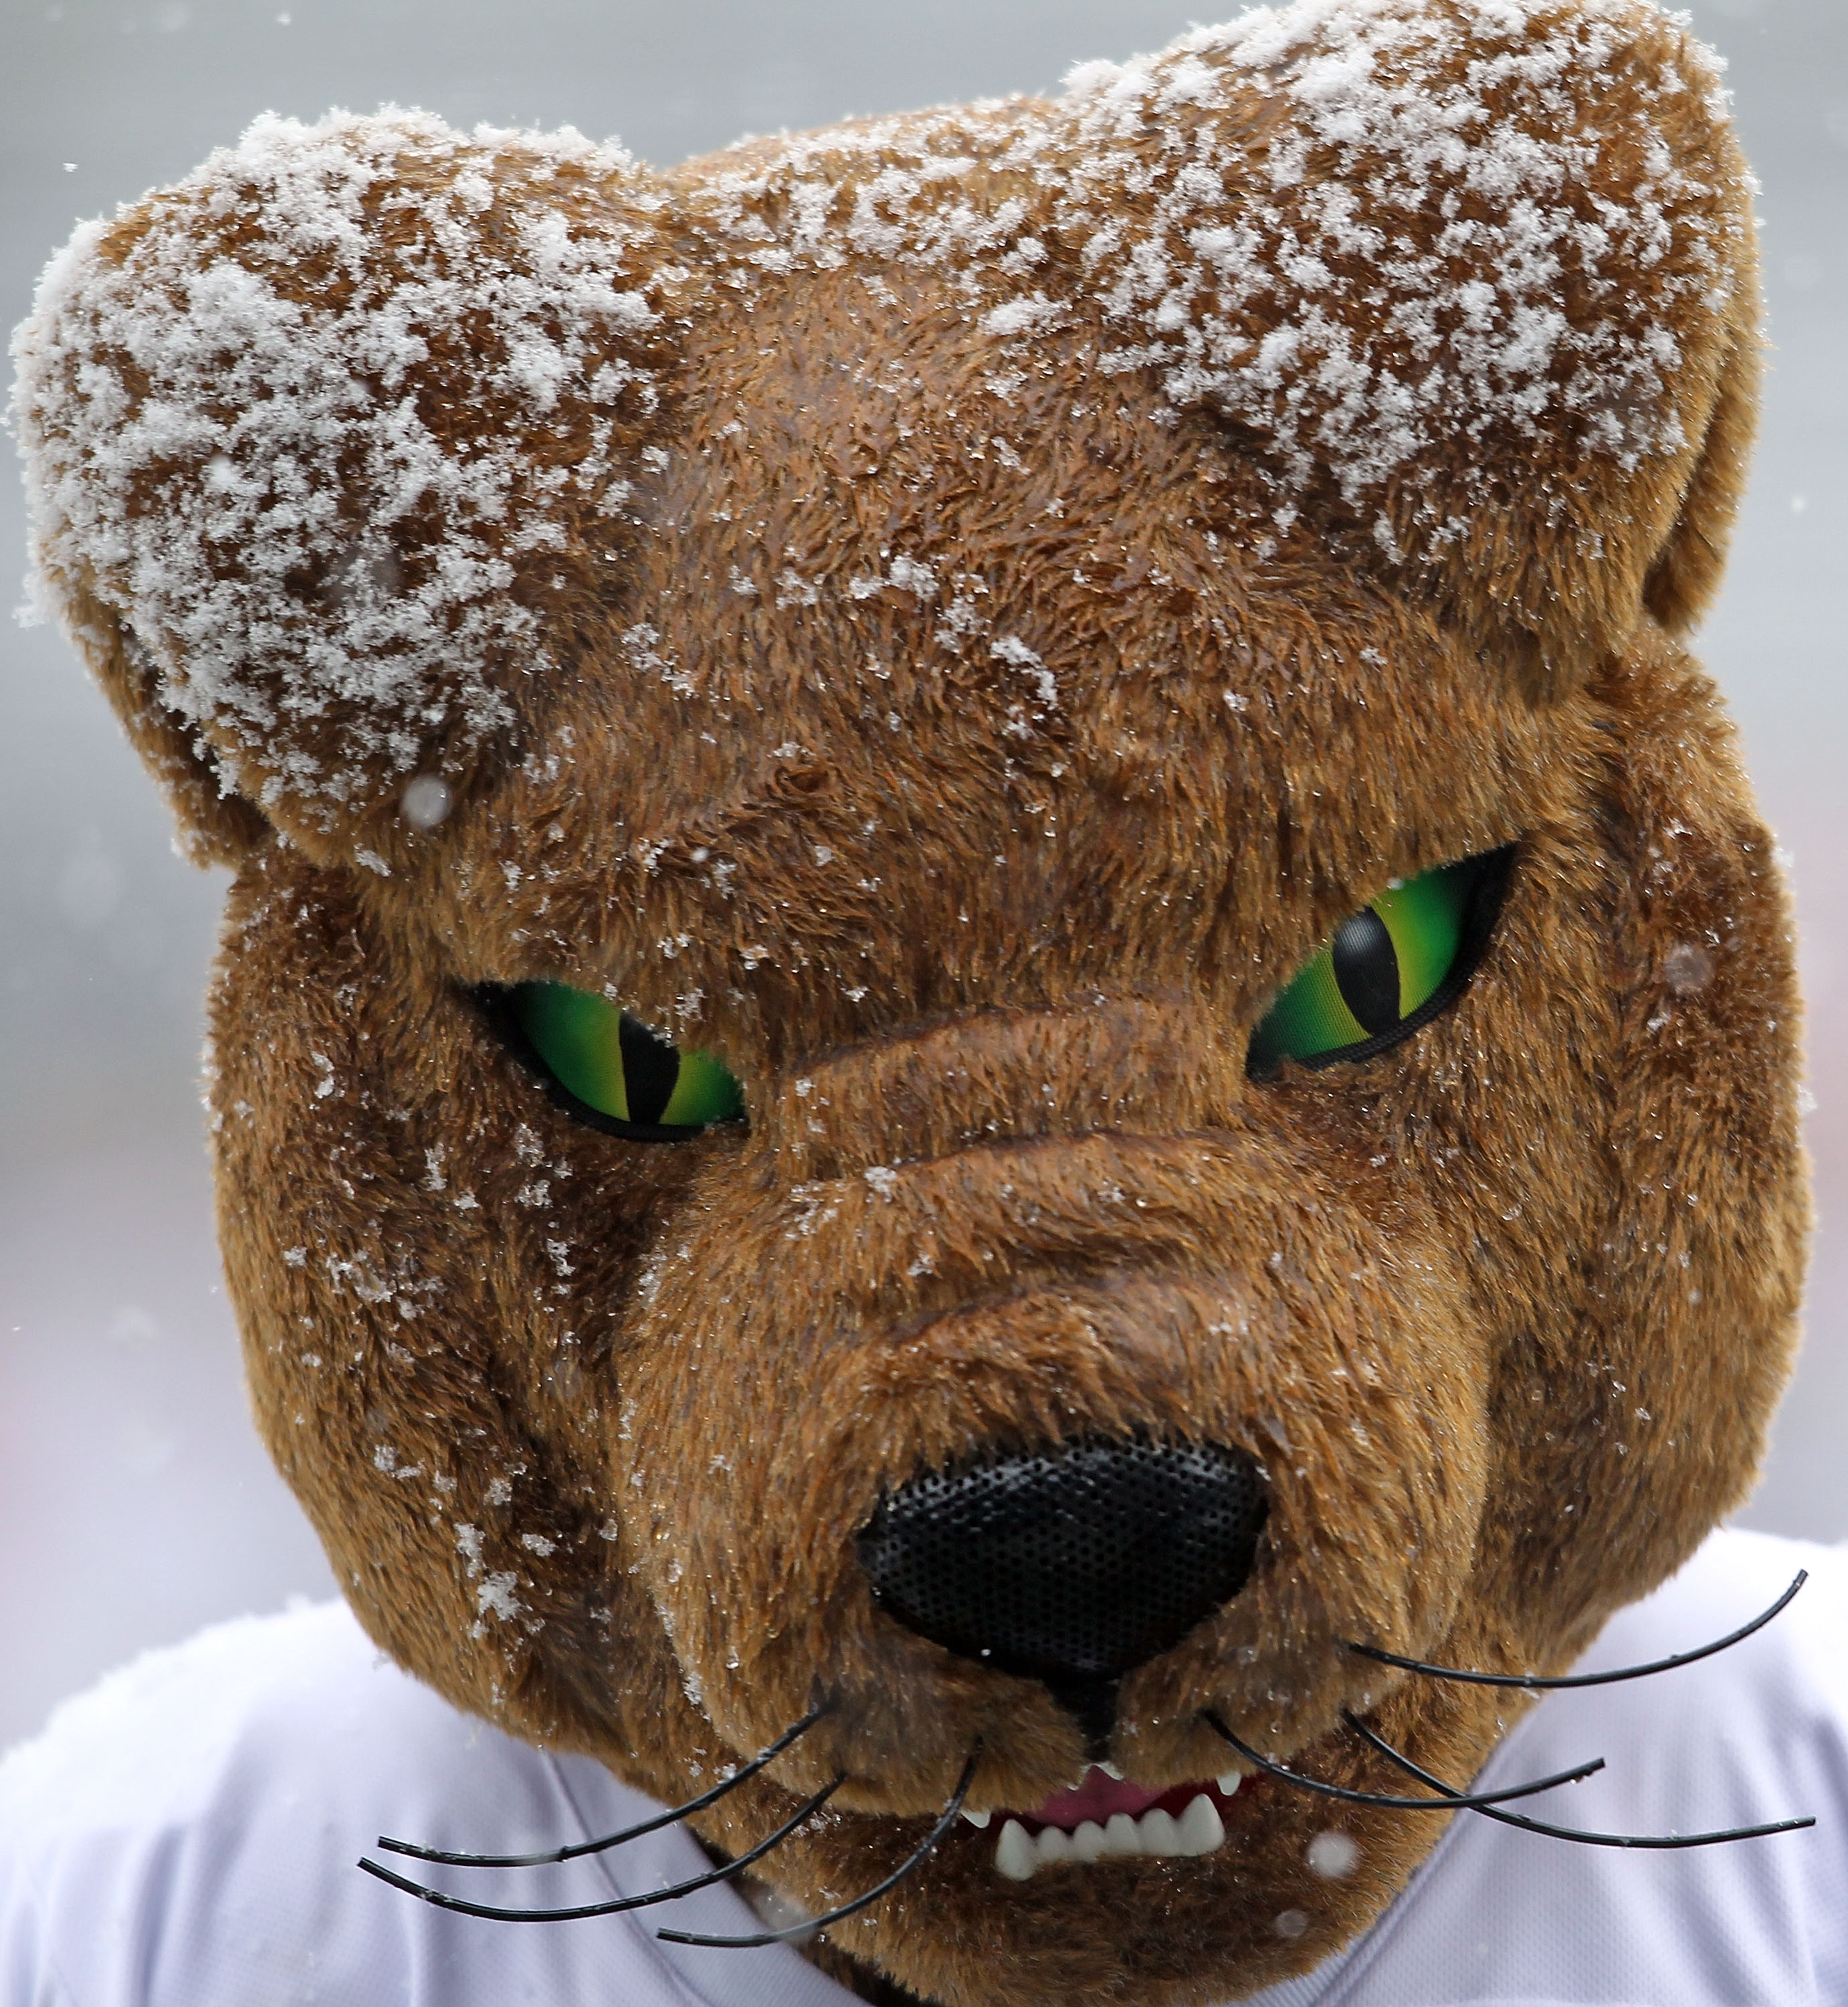 CINCINNATI, OH - DECEMBER 04:  The Pittsburg mascot is pictured covered in snow during the Big East Conference game between the the Pittsburgh Panthers and the Cincinnati Bearcats at Nippert Stadium on December 4, 2010 in Cincinnati, Ohio.  (Photo by Andy